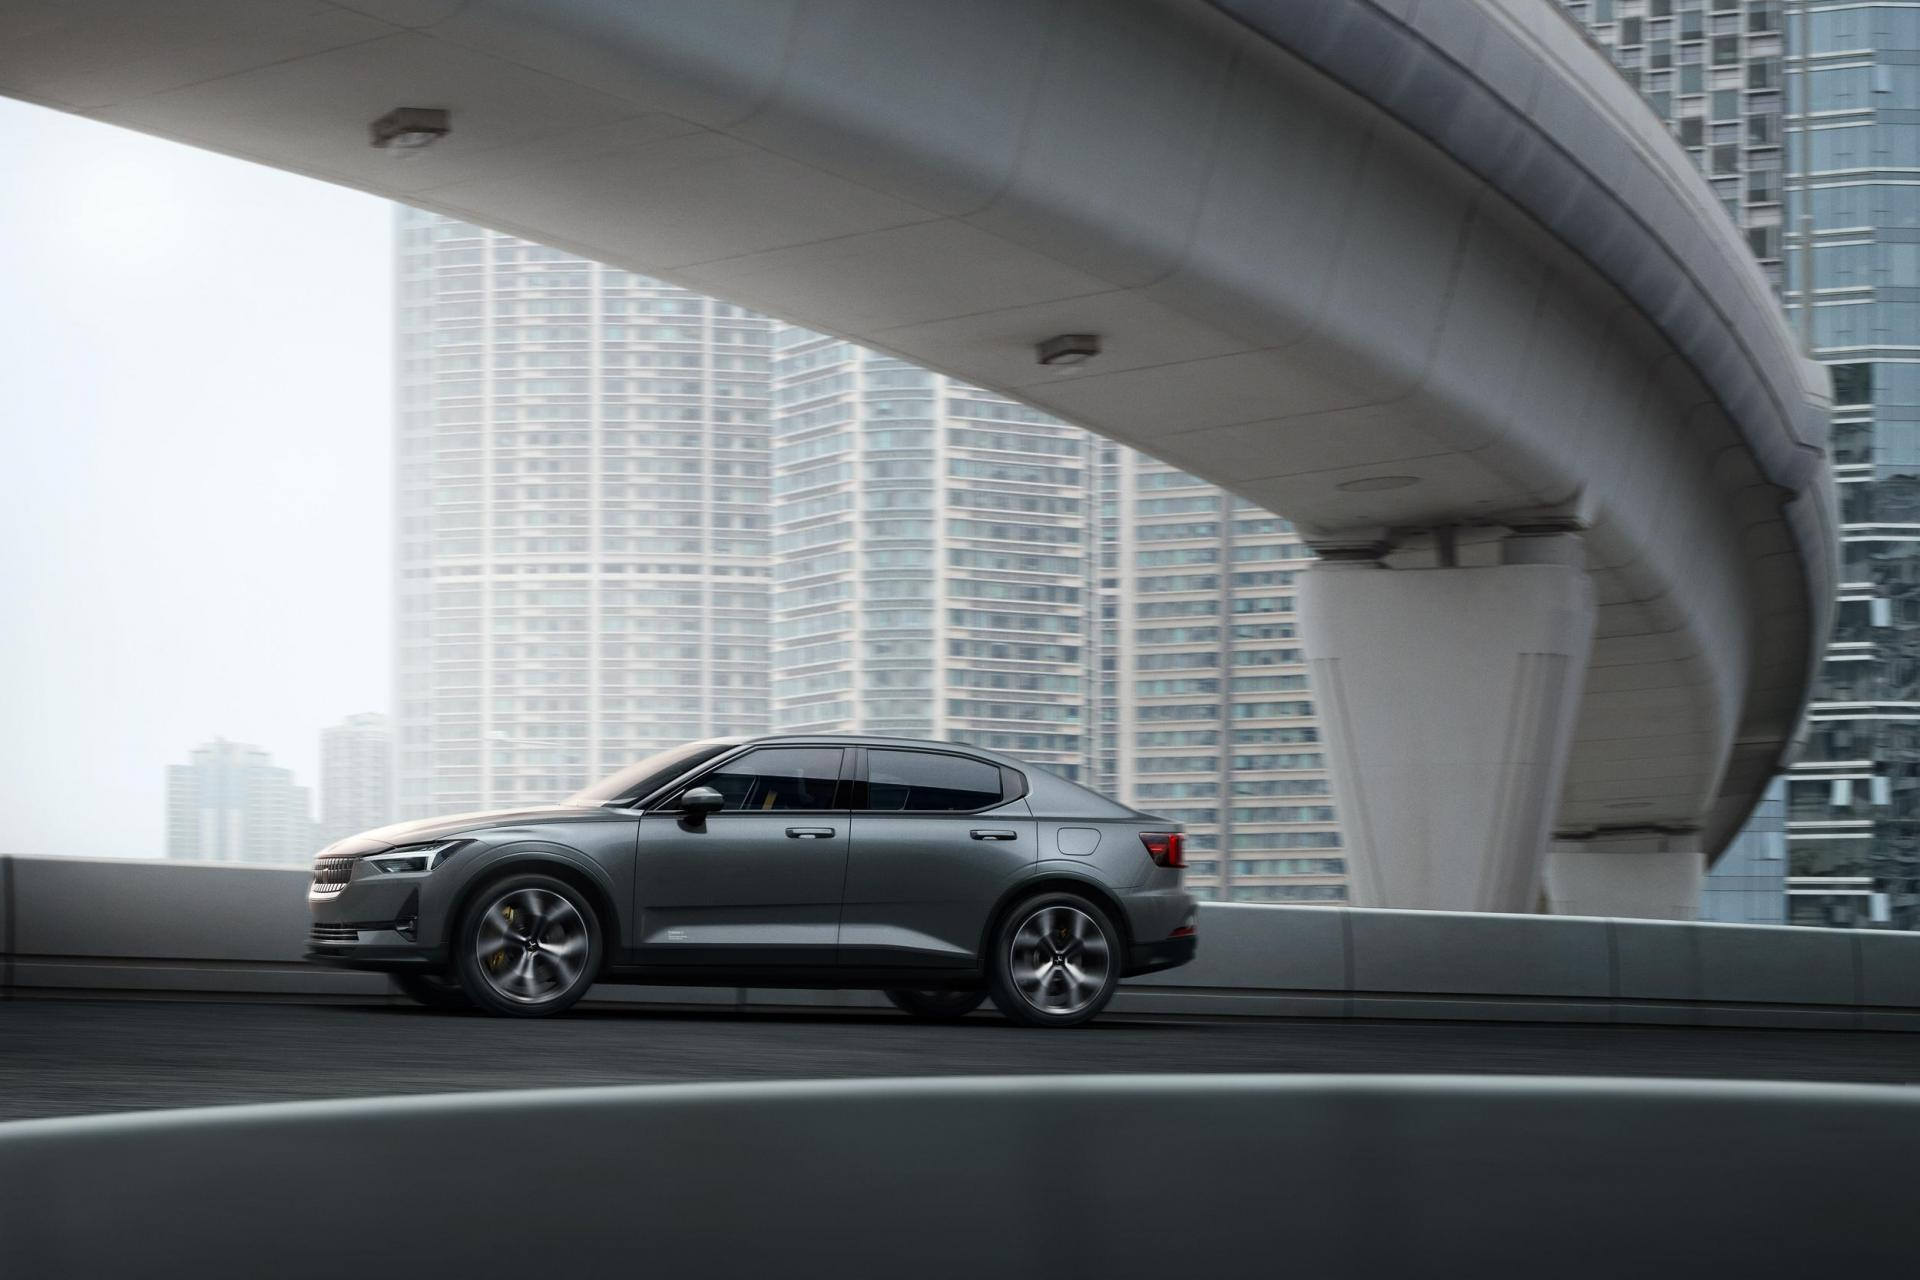 The Polestar 2 makes use of recycled materials.